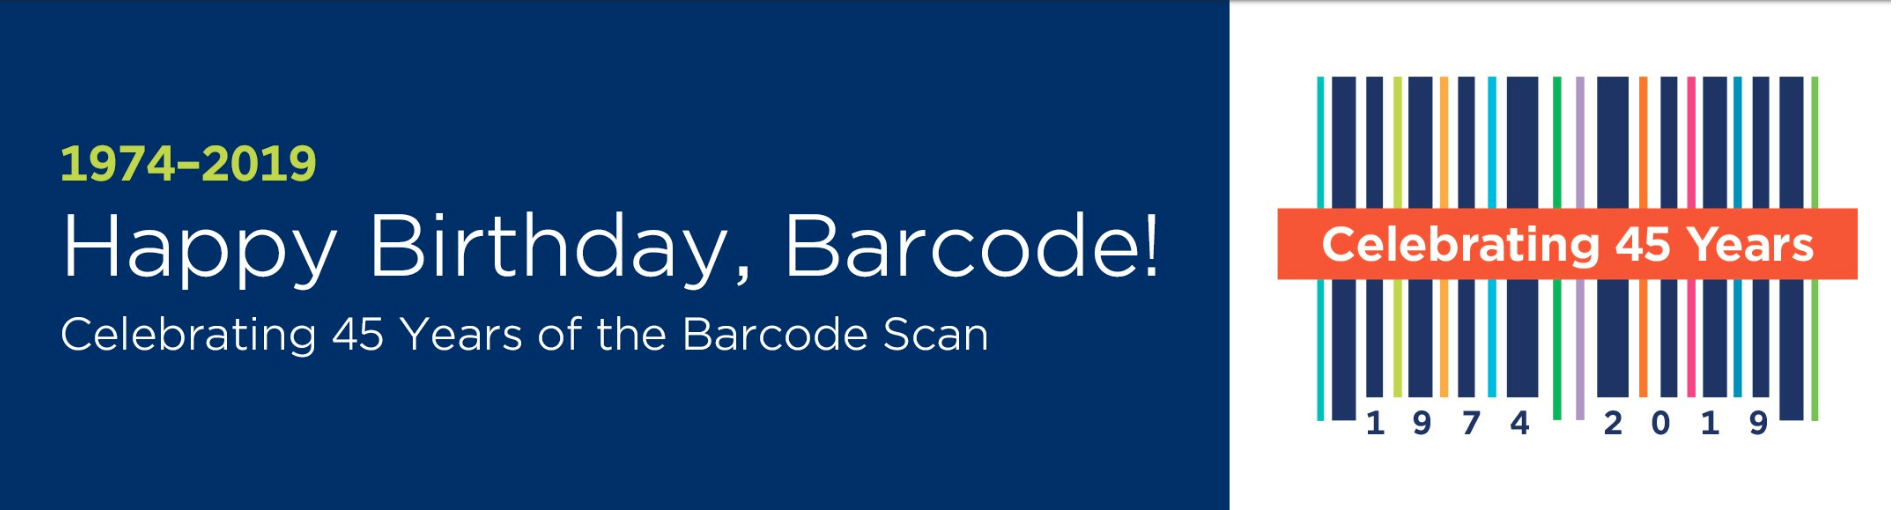 Happy Birthday, Barcode! Celebrating 45 Years.